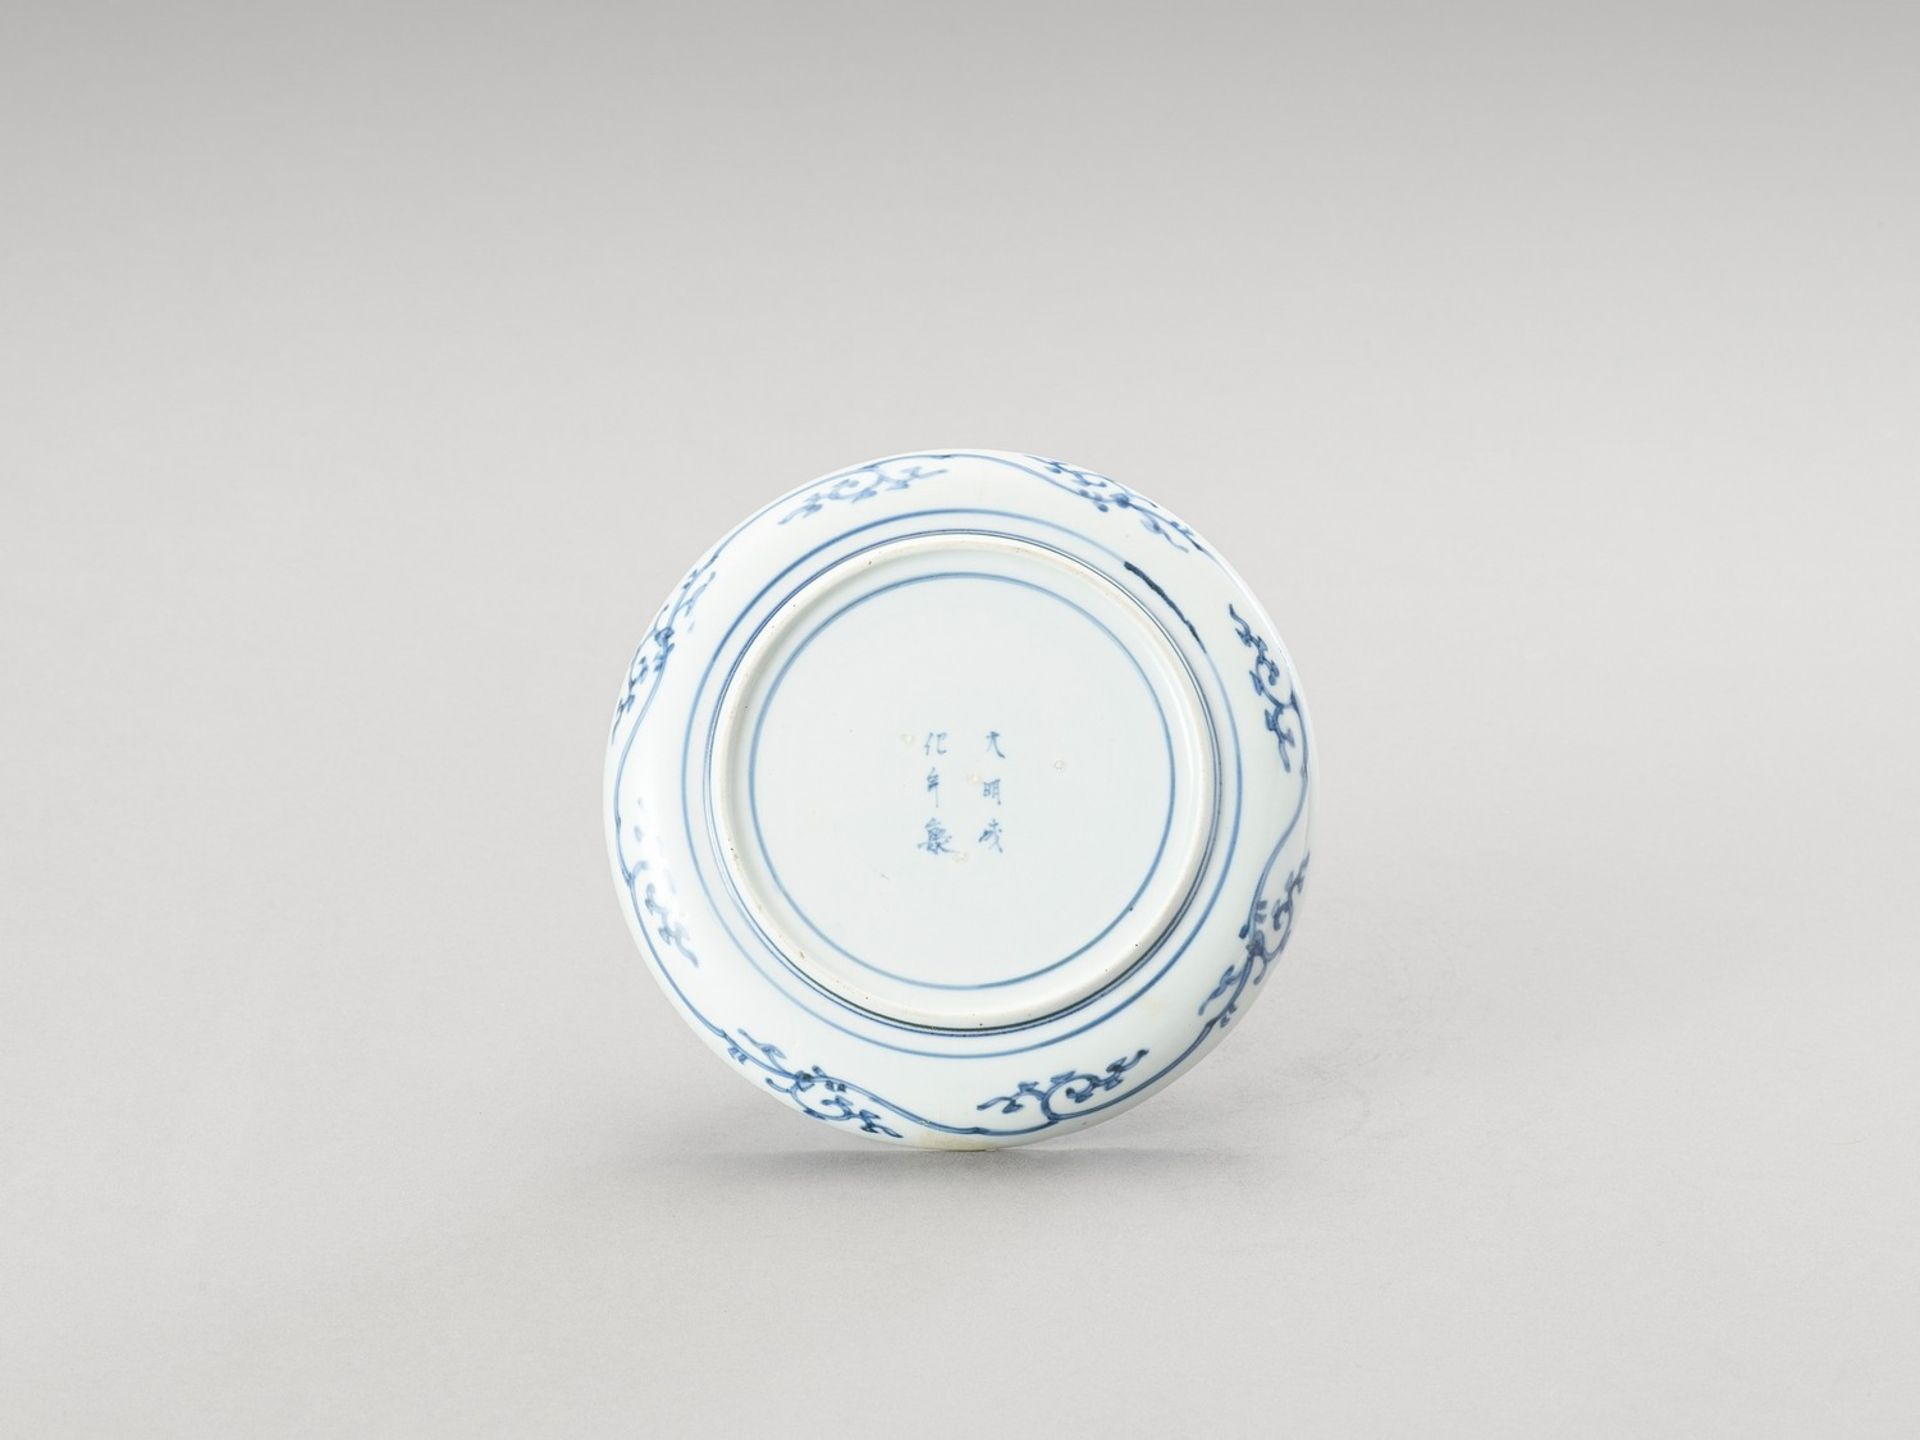 A BLUE AND WHITE ARITA PORCELAIN 'FLORAL' DISH - Image 3 of 4